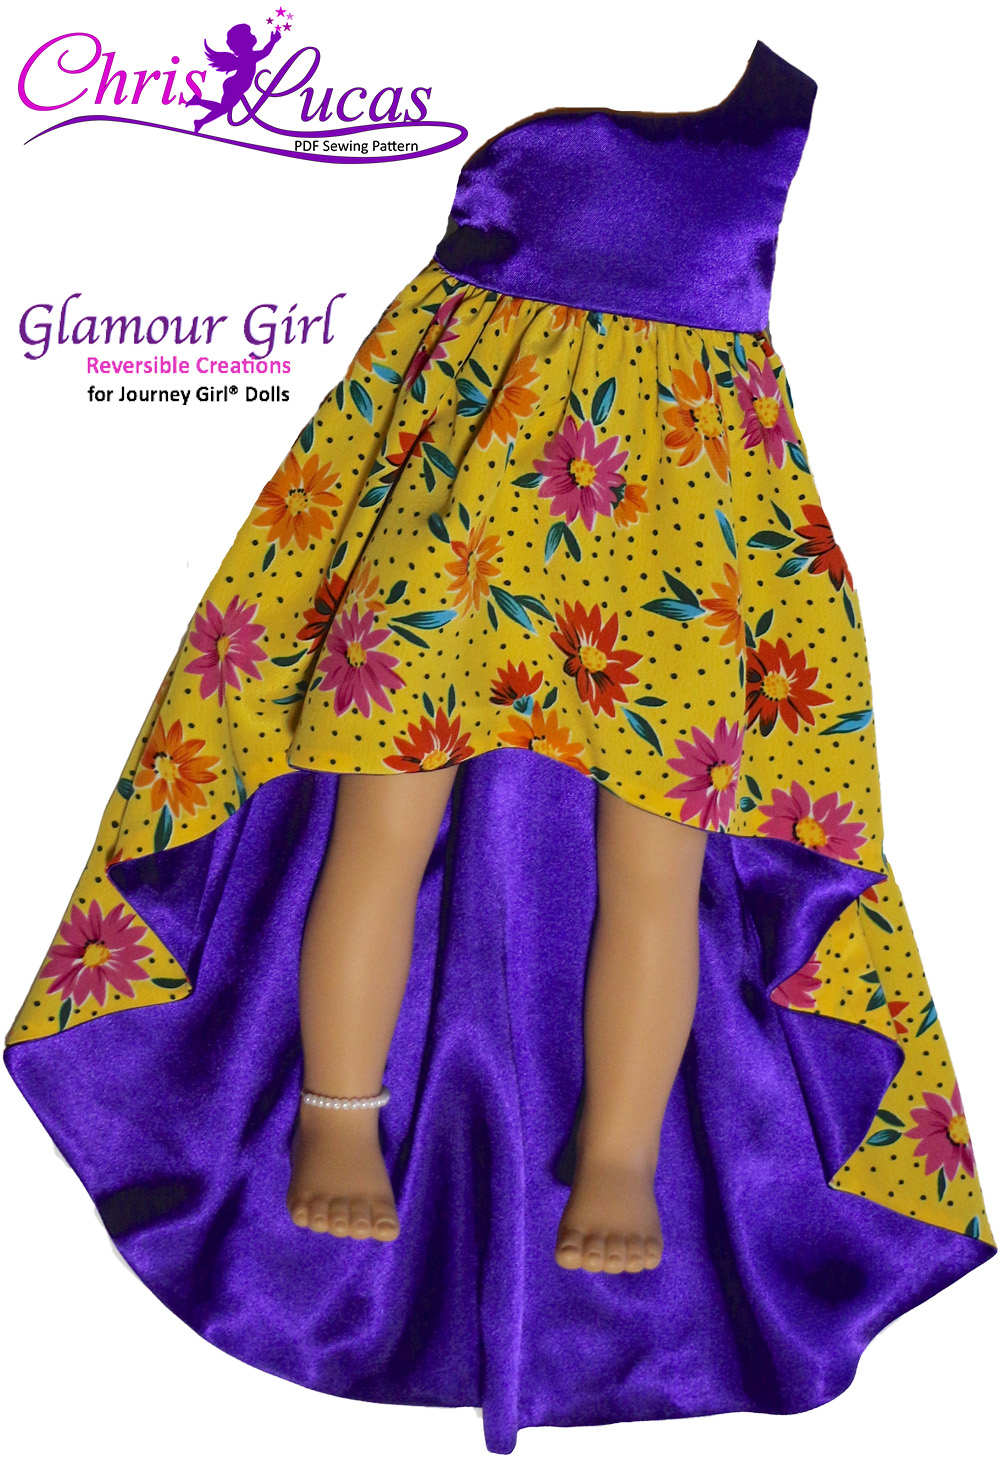 Glamour Girl - Full-Train-Front-View - Journey Girl Doll Sewing Pattern - Fully Reversible